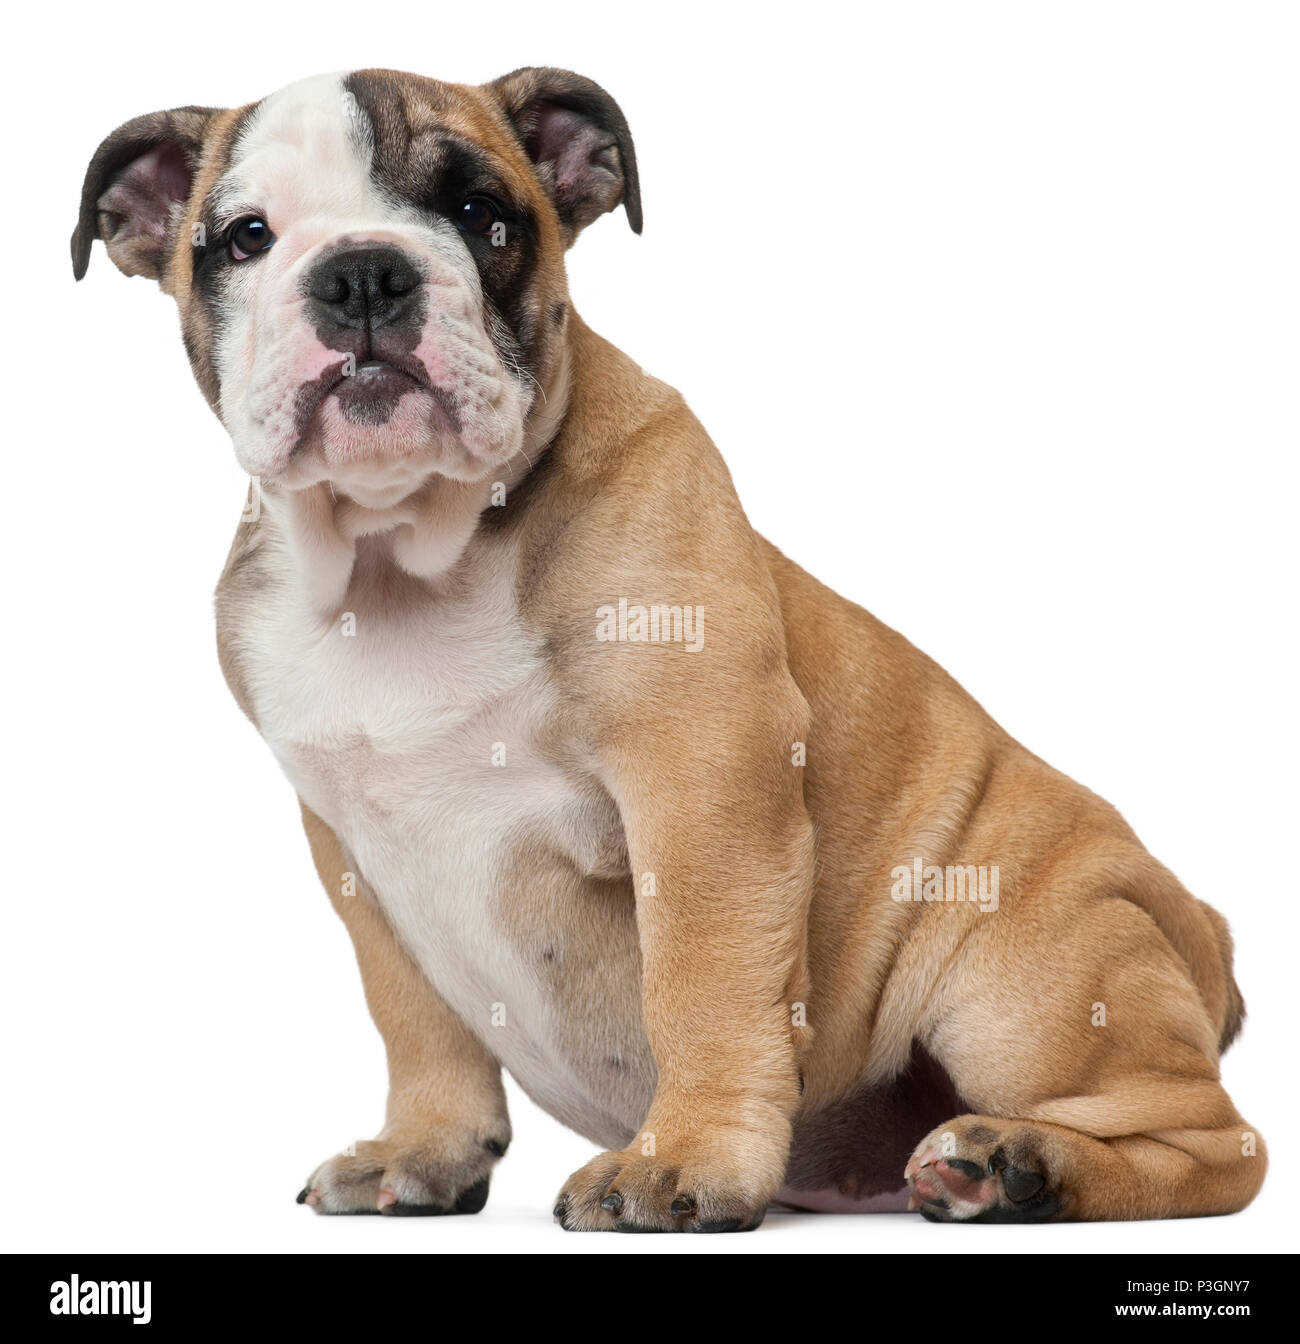 English Bulldog Puppy 11 Weeks Old Sitting In Front Of White